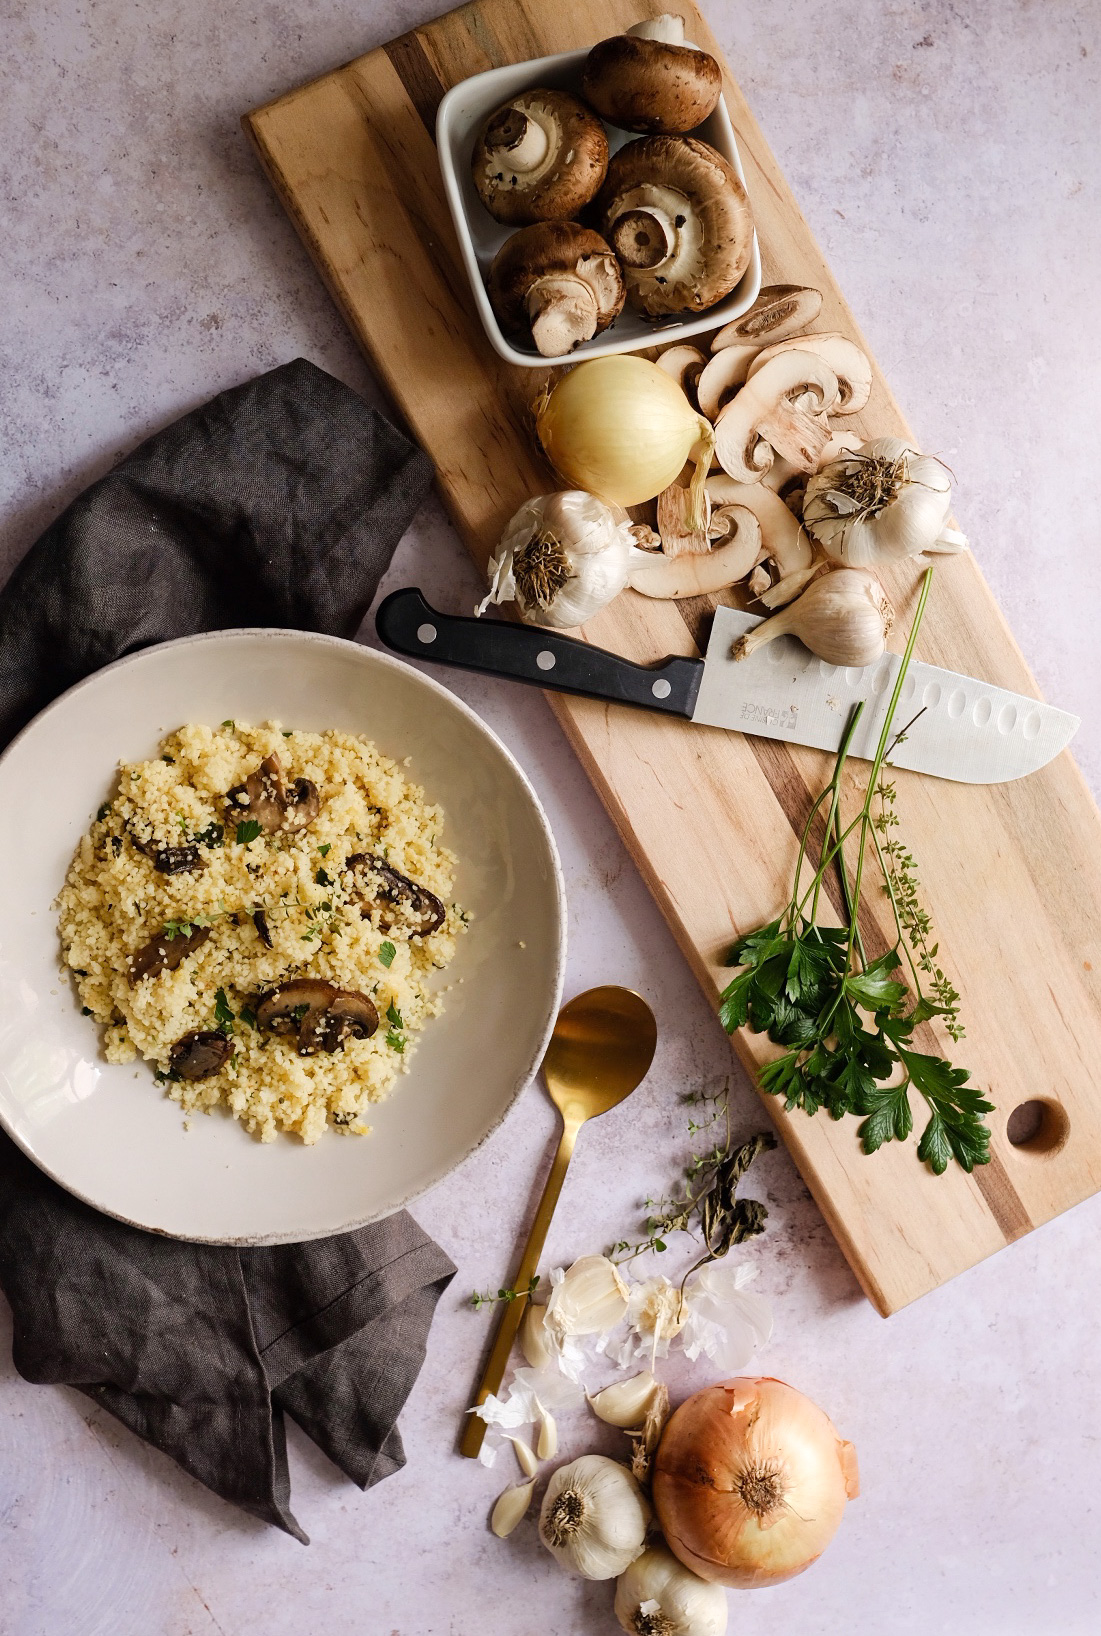 Lifestyle Blogger Chocolate and Lace shares her recipe for the Best Mushroom Herb Couscous.